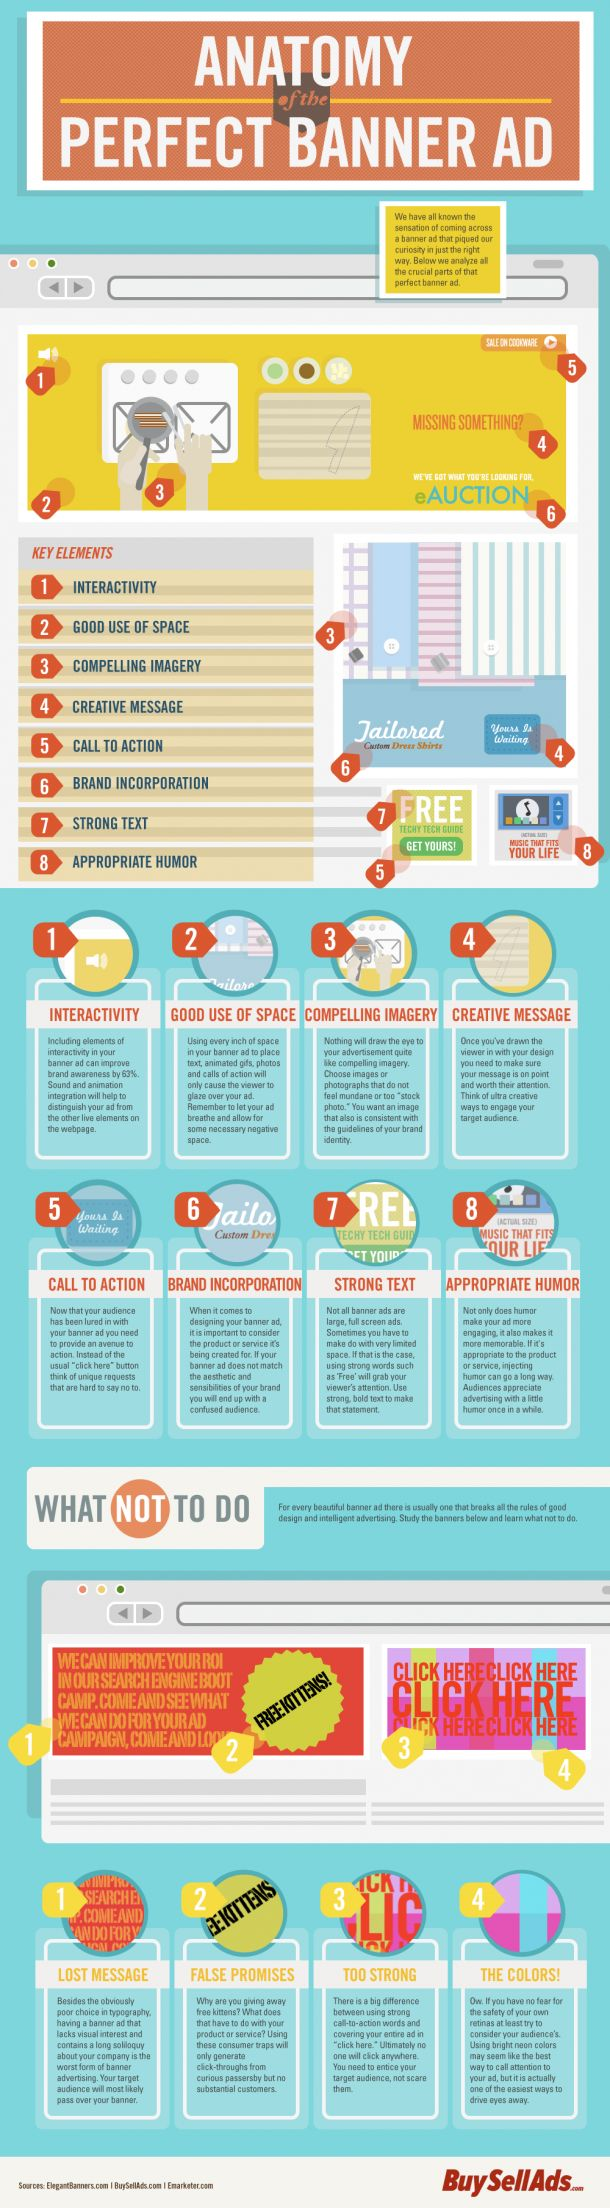 Anatomy of a great Banner AD #Inforgraphic #bannerads #marketing